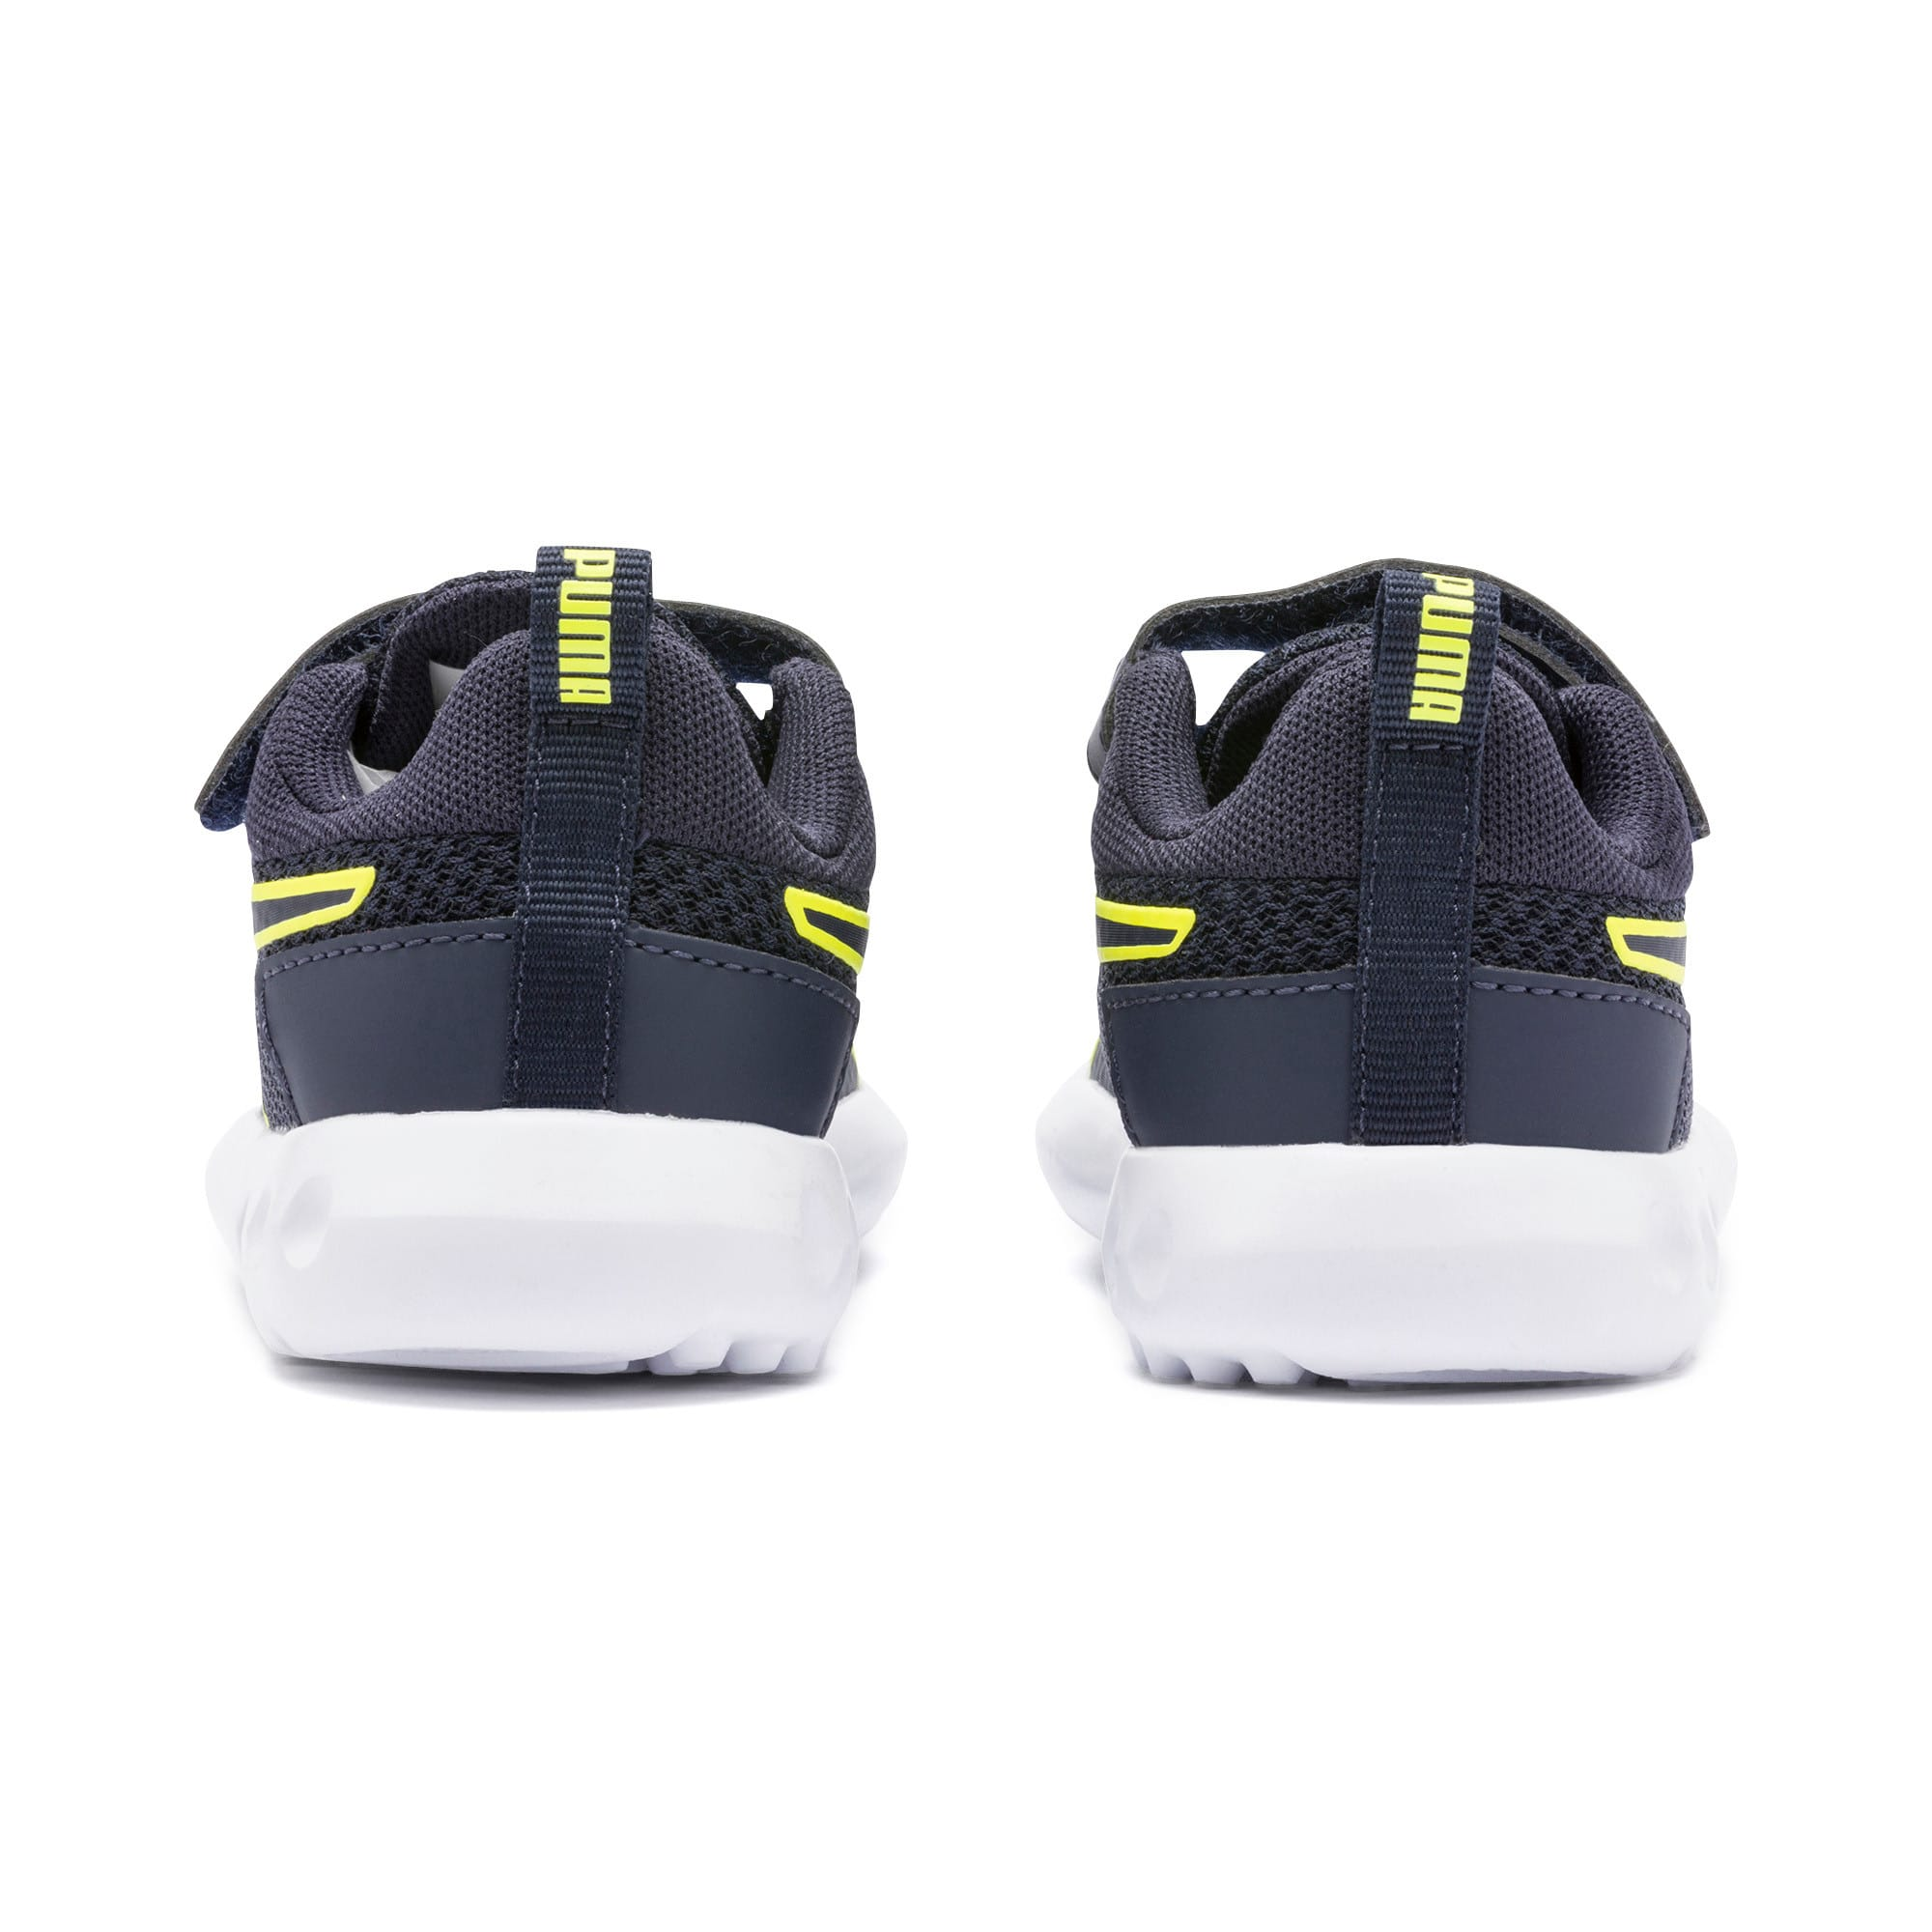 Carson 2 Concave V Babies' Trainers, Puma Black-Peacoat, large